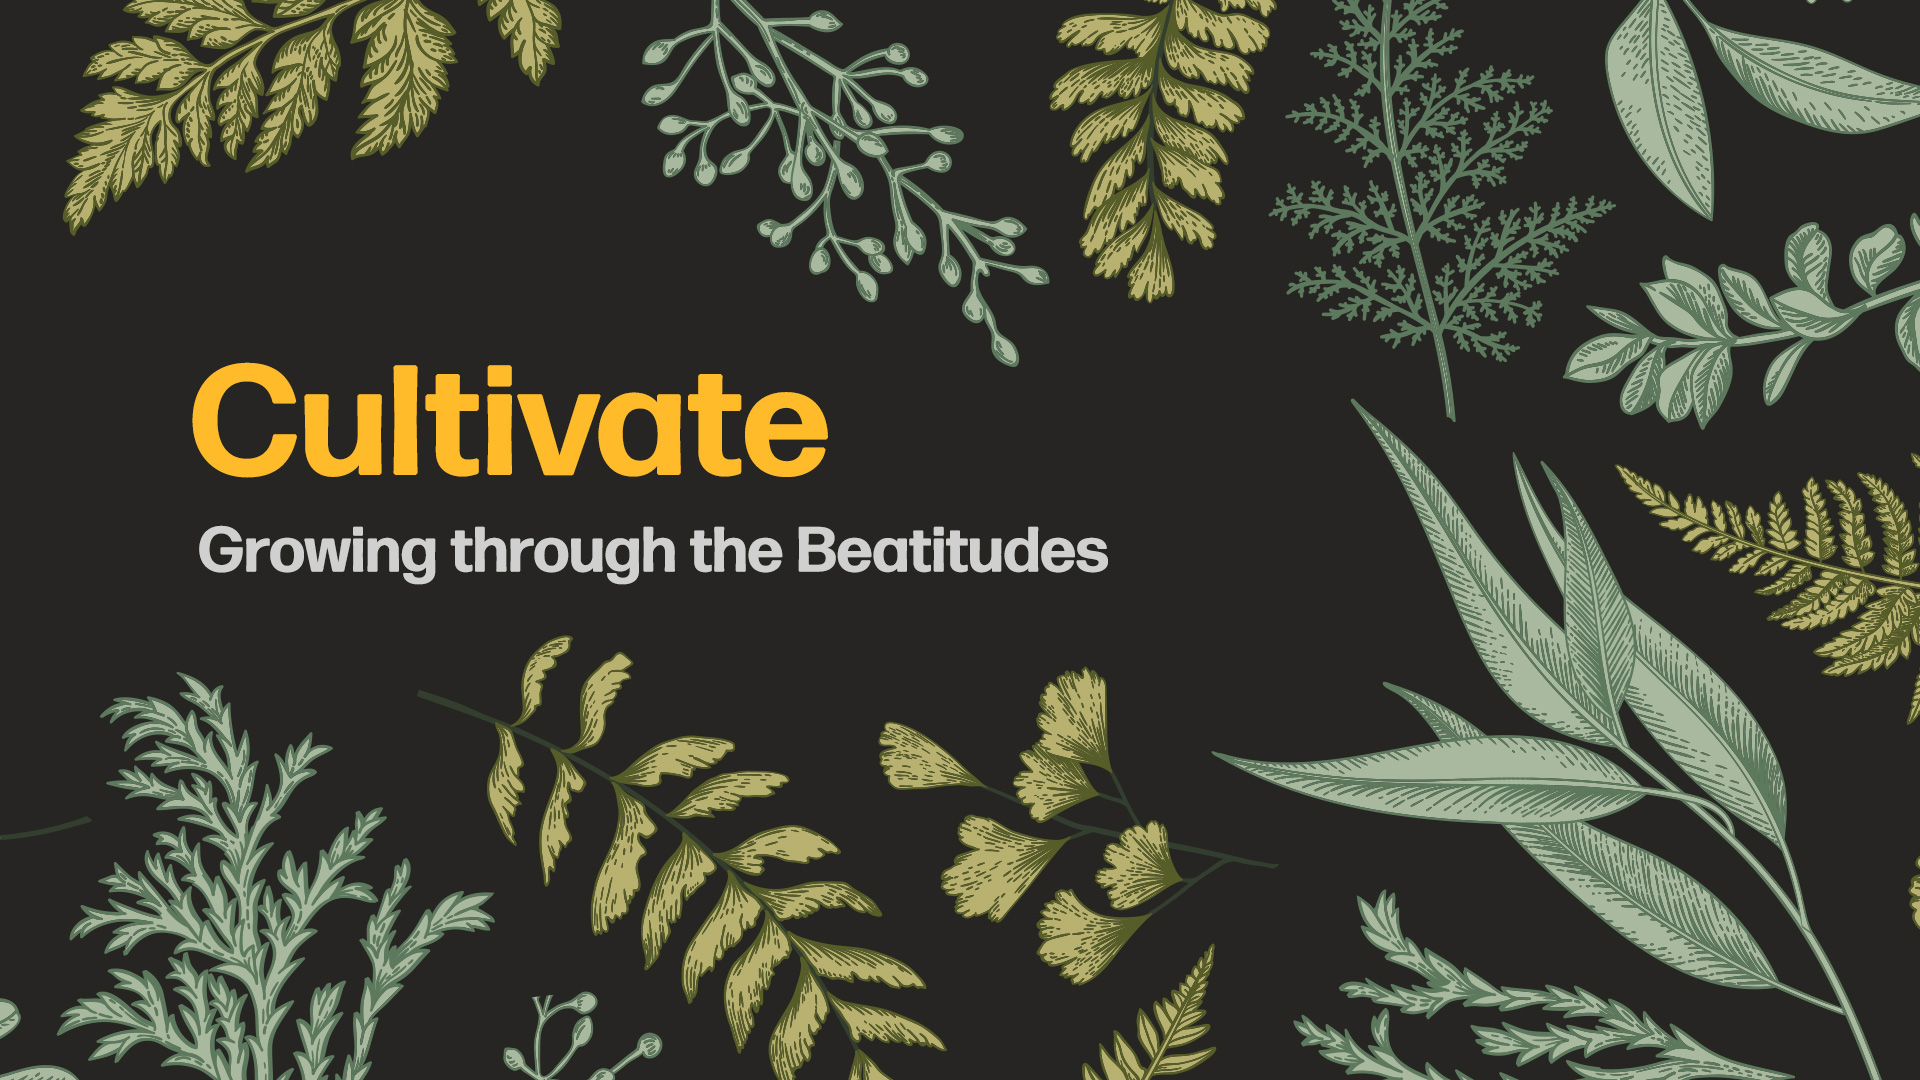 Cultivate: Growing Through the Beatitudes - Breaking News